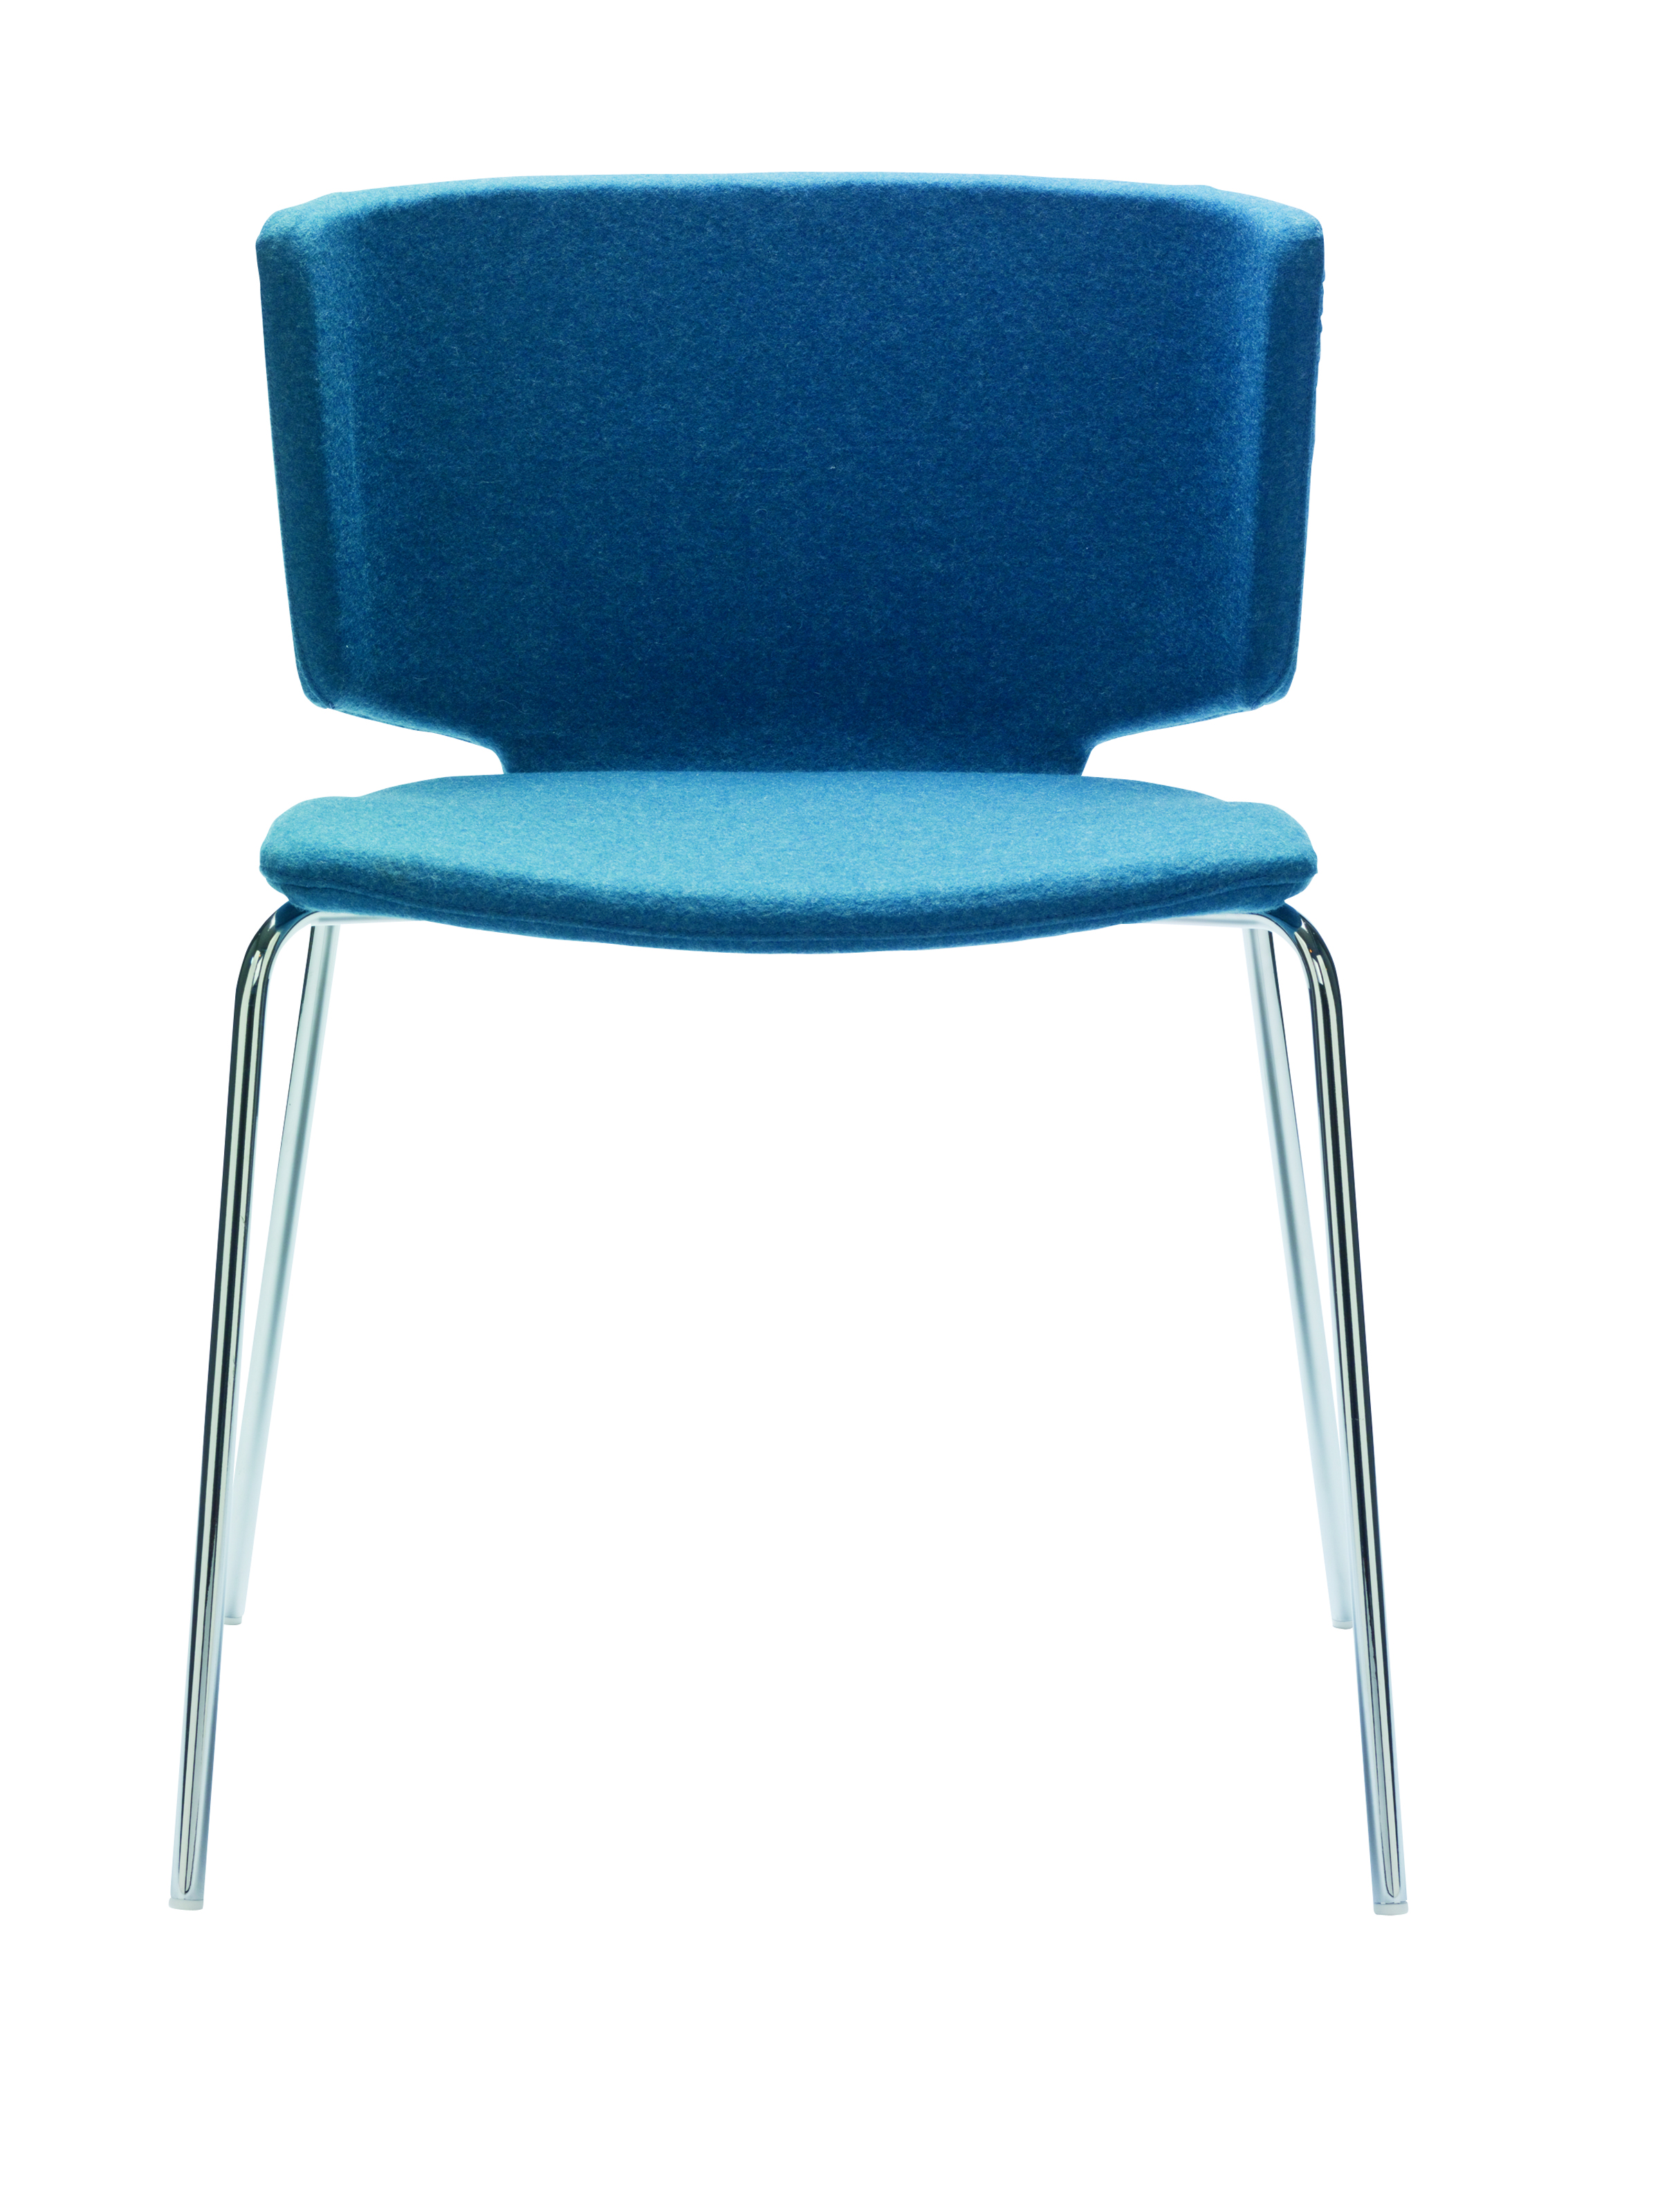 Wrapp Chair